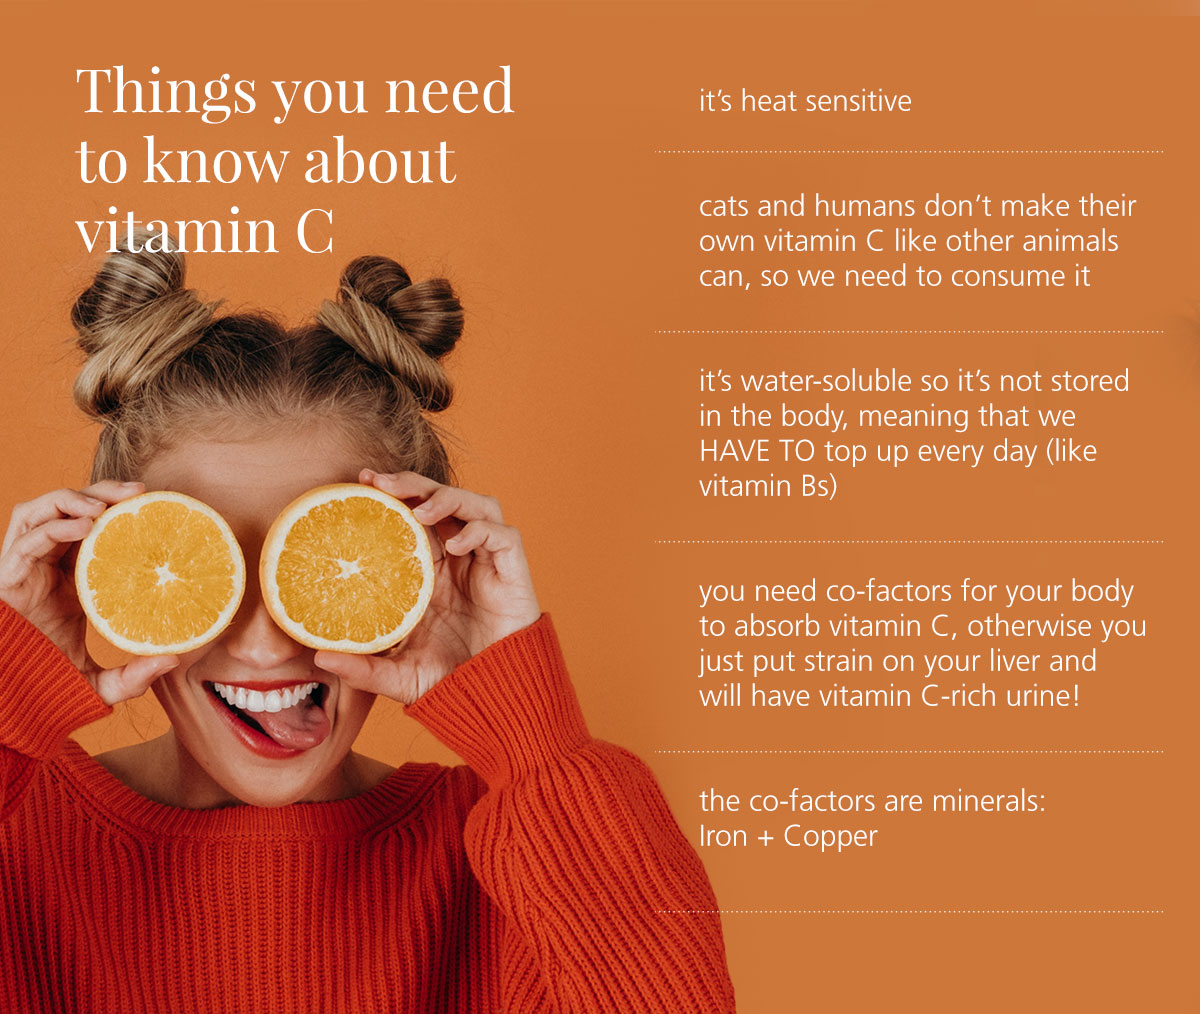 vitamin-c-things-you-need-to-know-soairng-free-superfoods